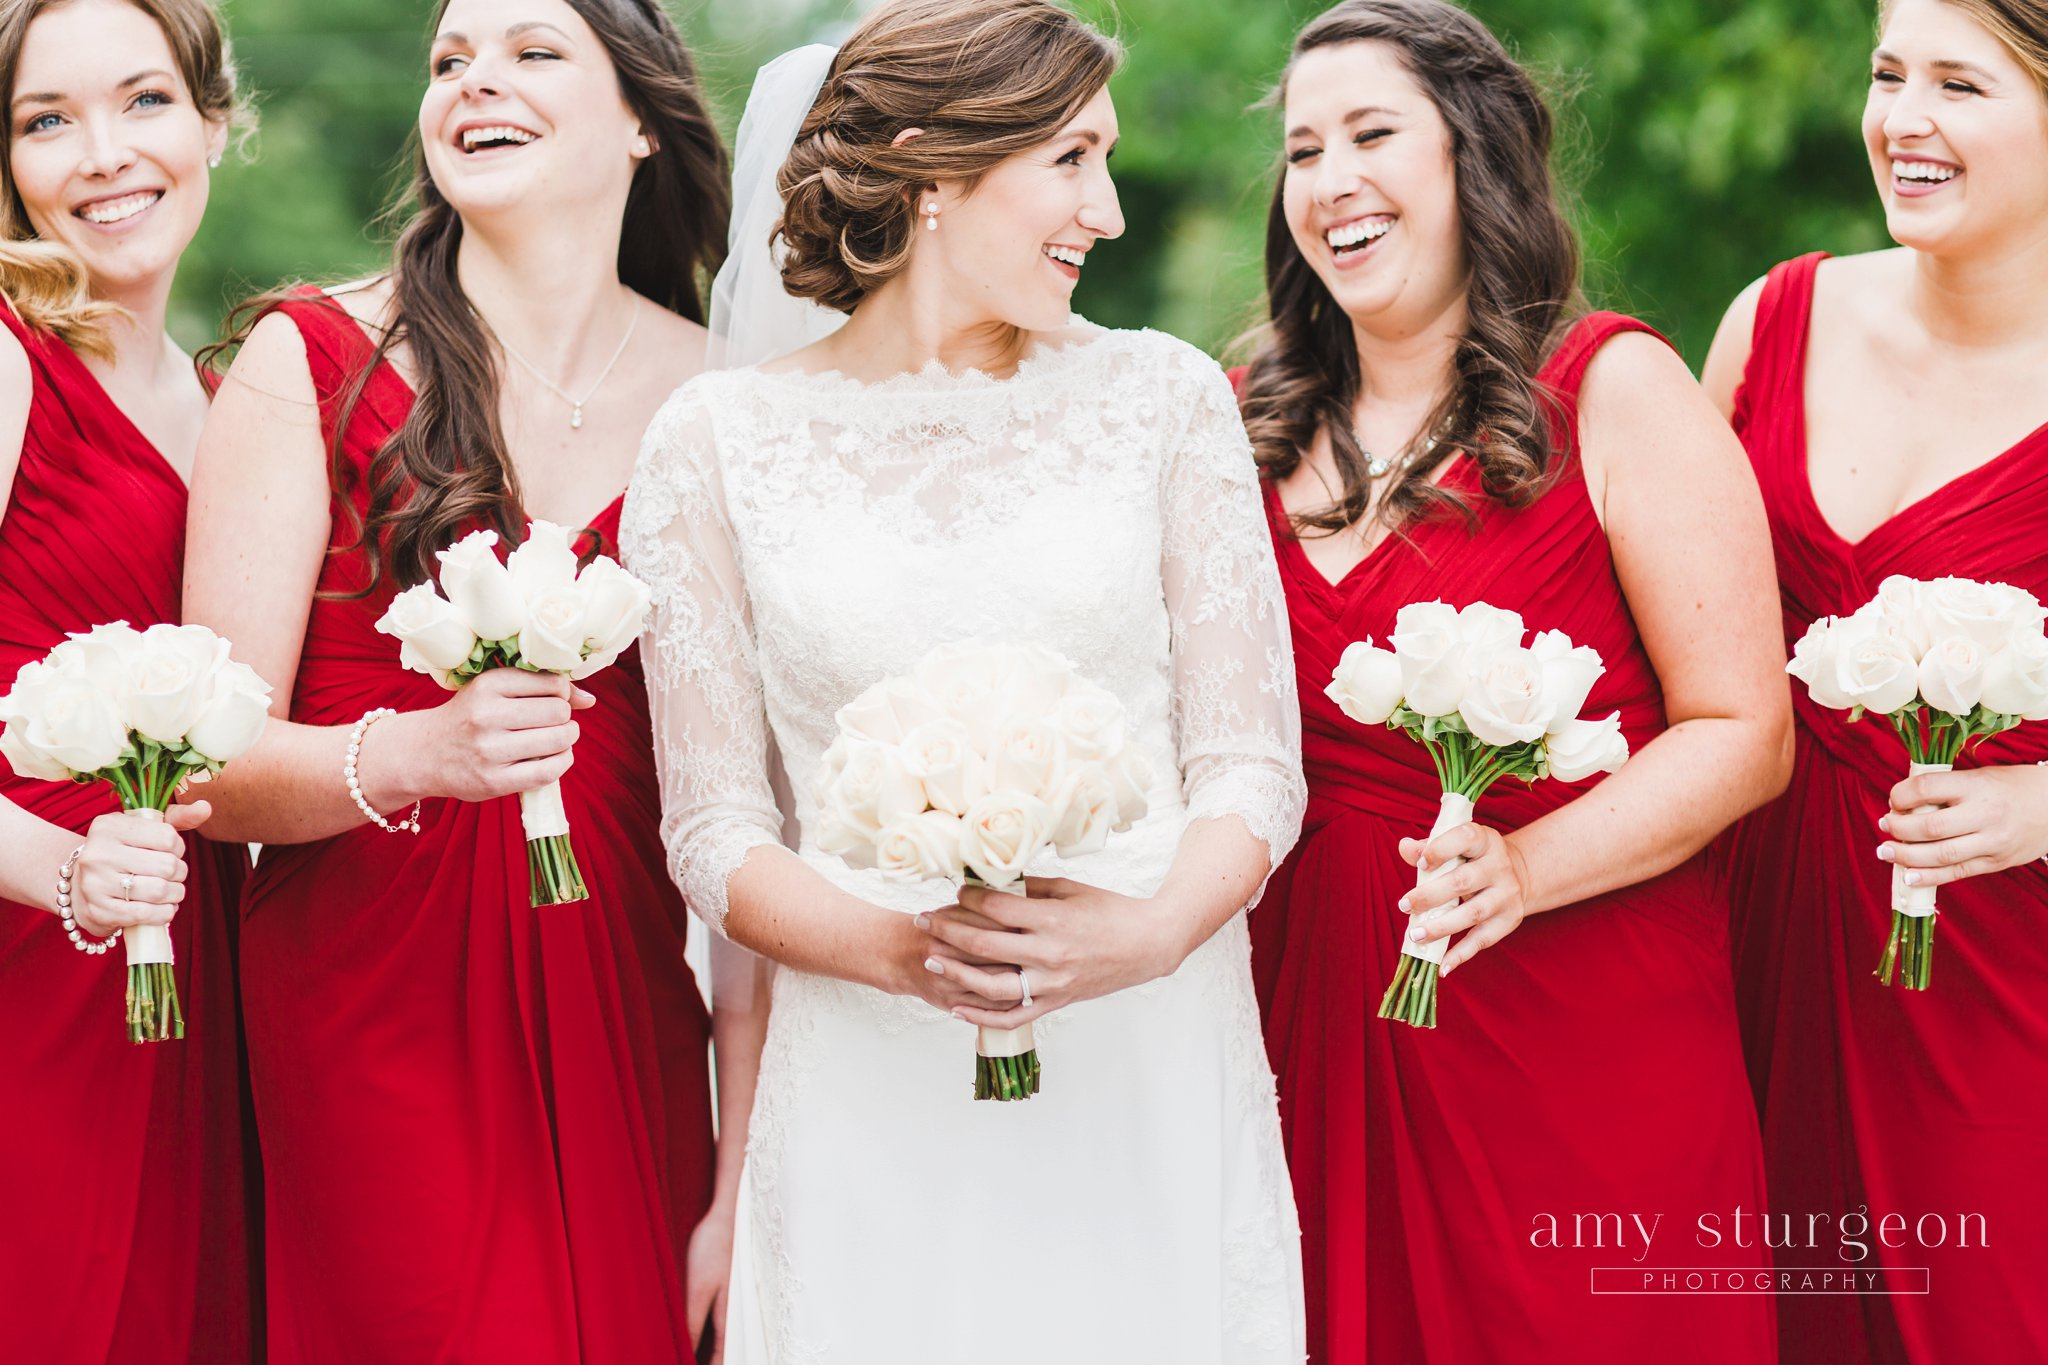 red bridesmaids dresses with white rose bouquets at the alpaca farm wedding